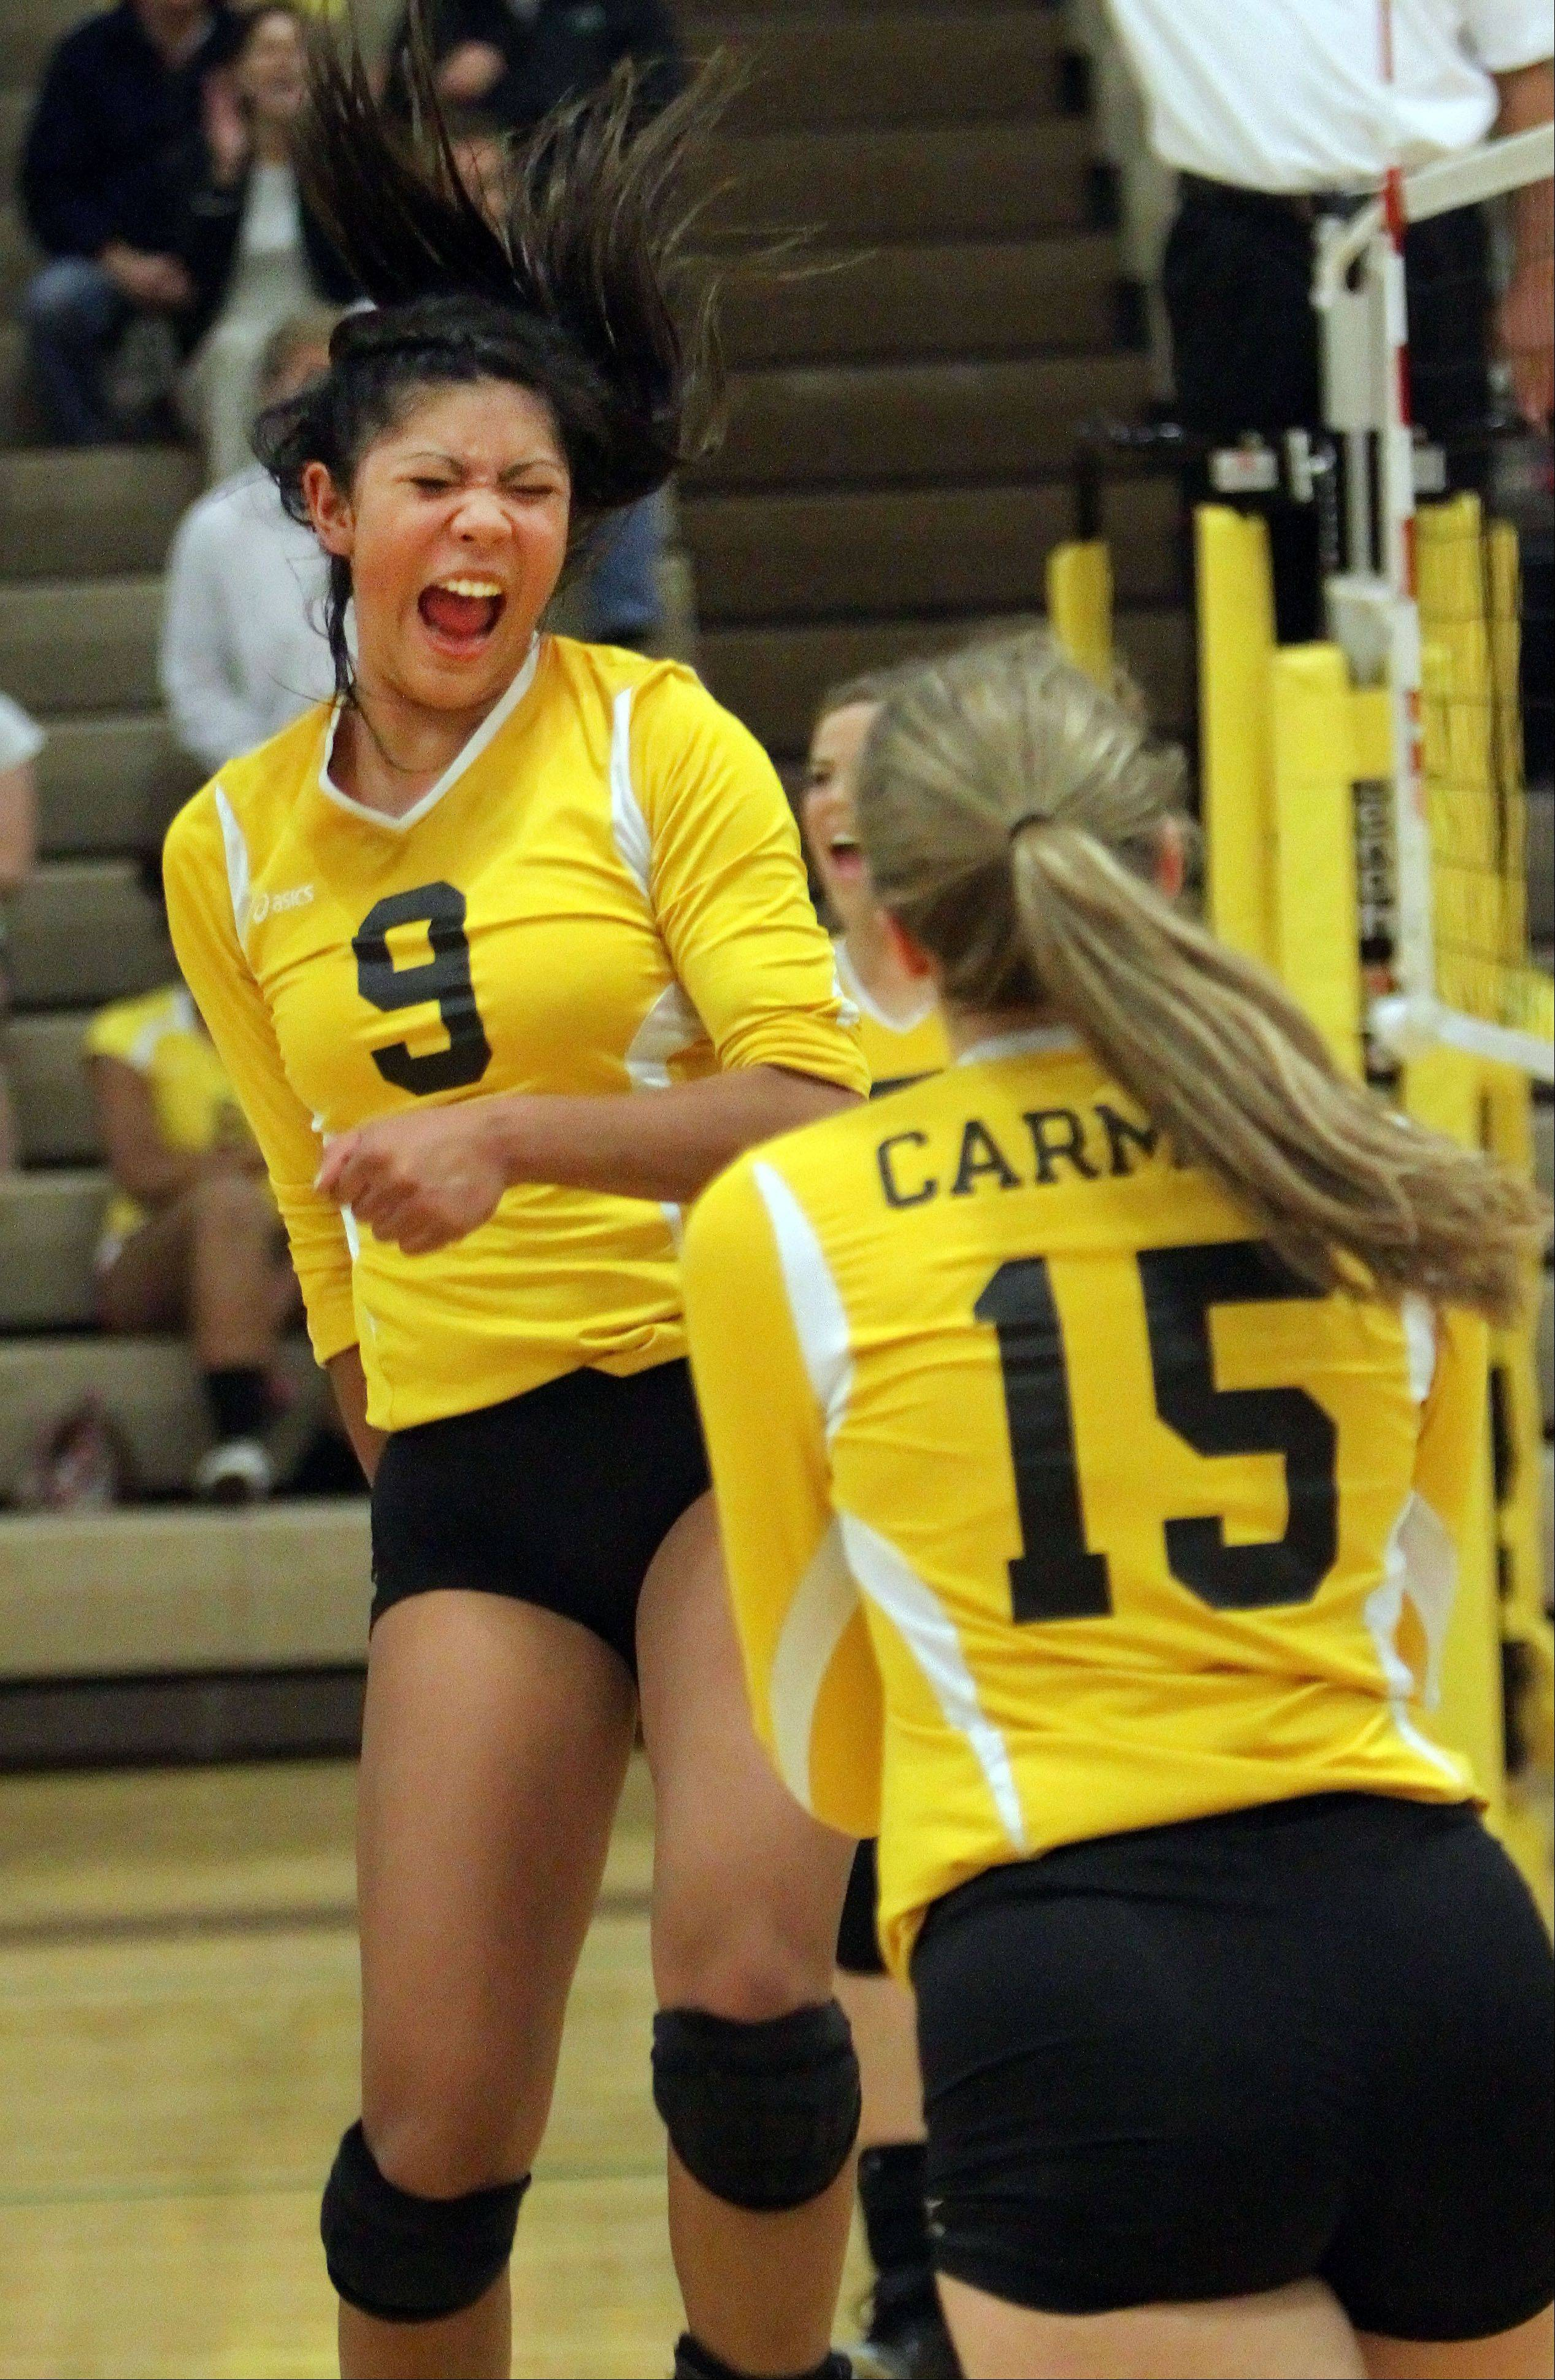 Carmel's Alyssa Armada, left, and Ellie Rengers celebrate after winning a point against Providence Catholic on Tuesday night in Mundelein.